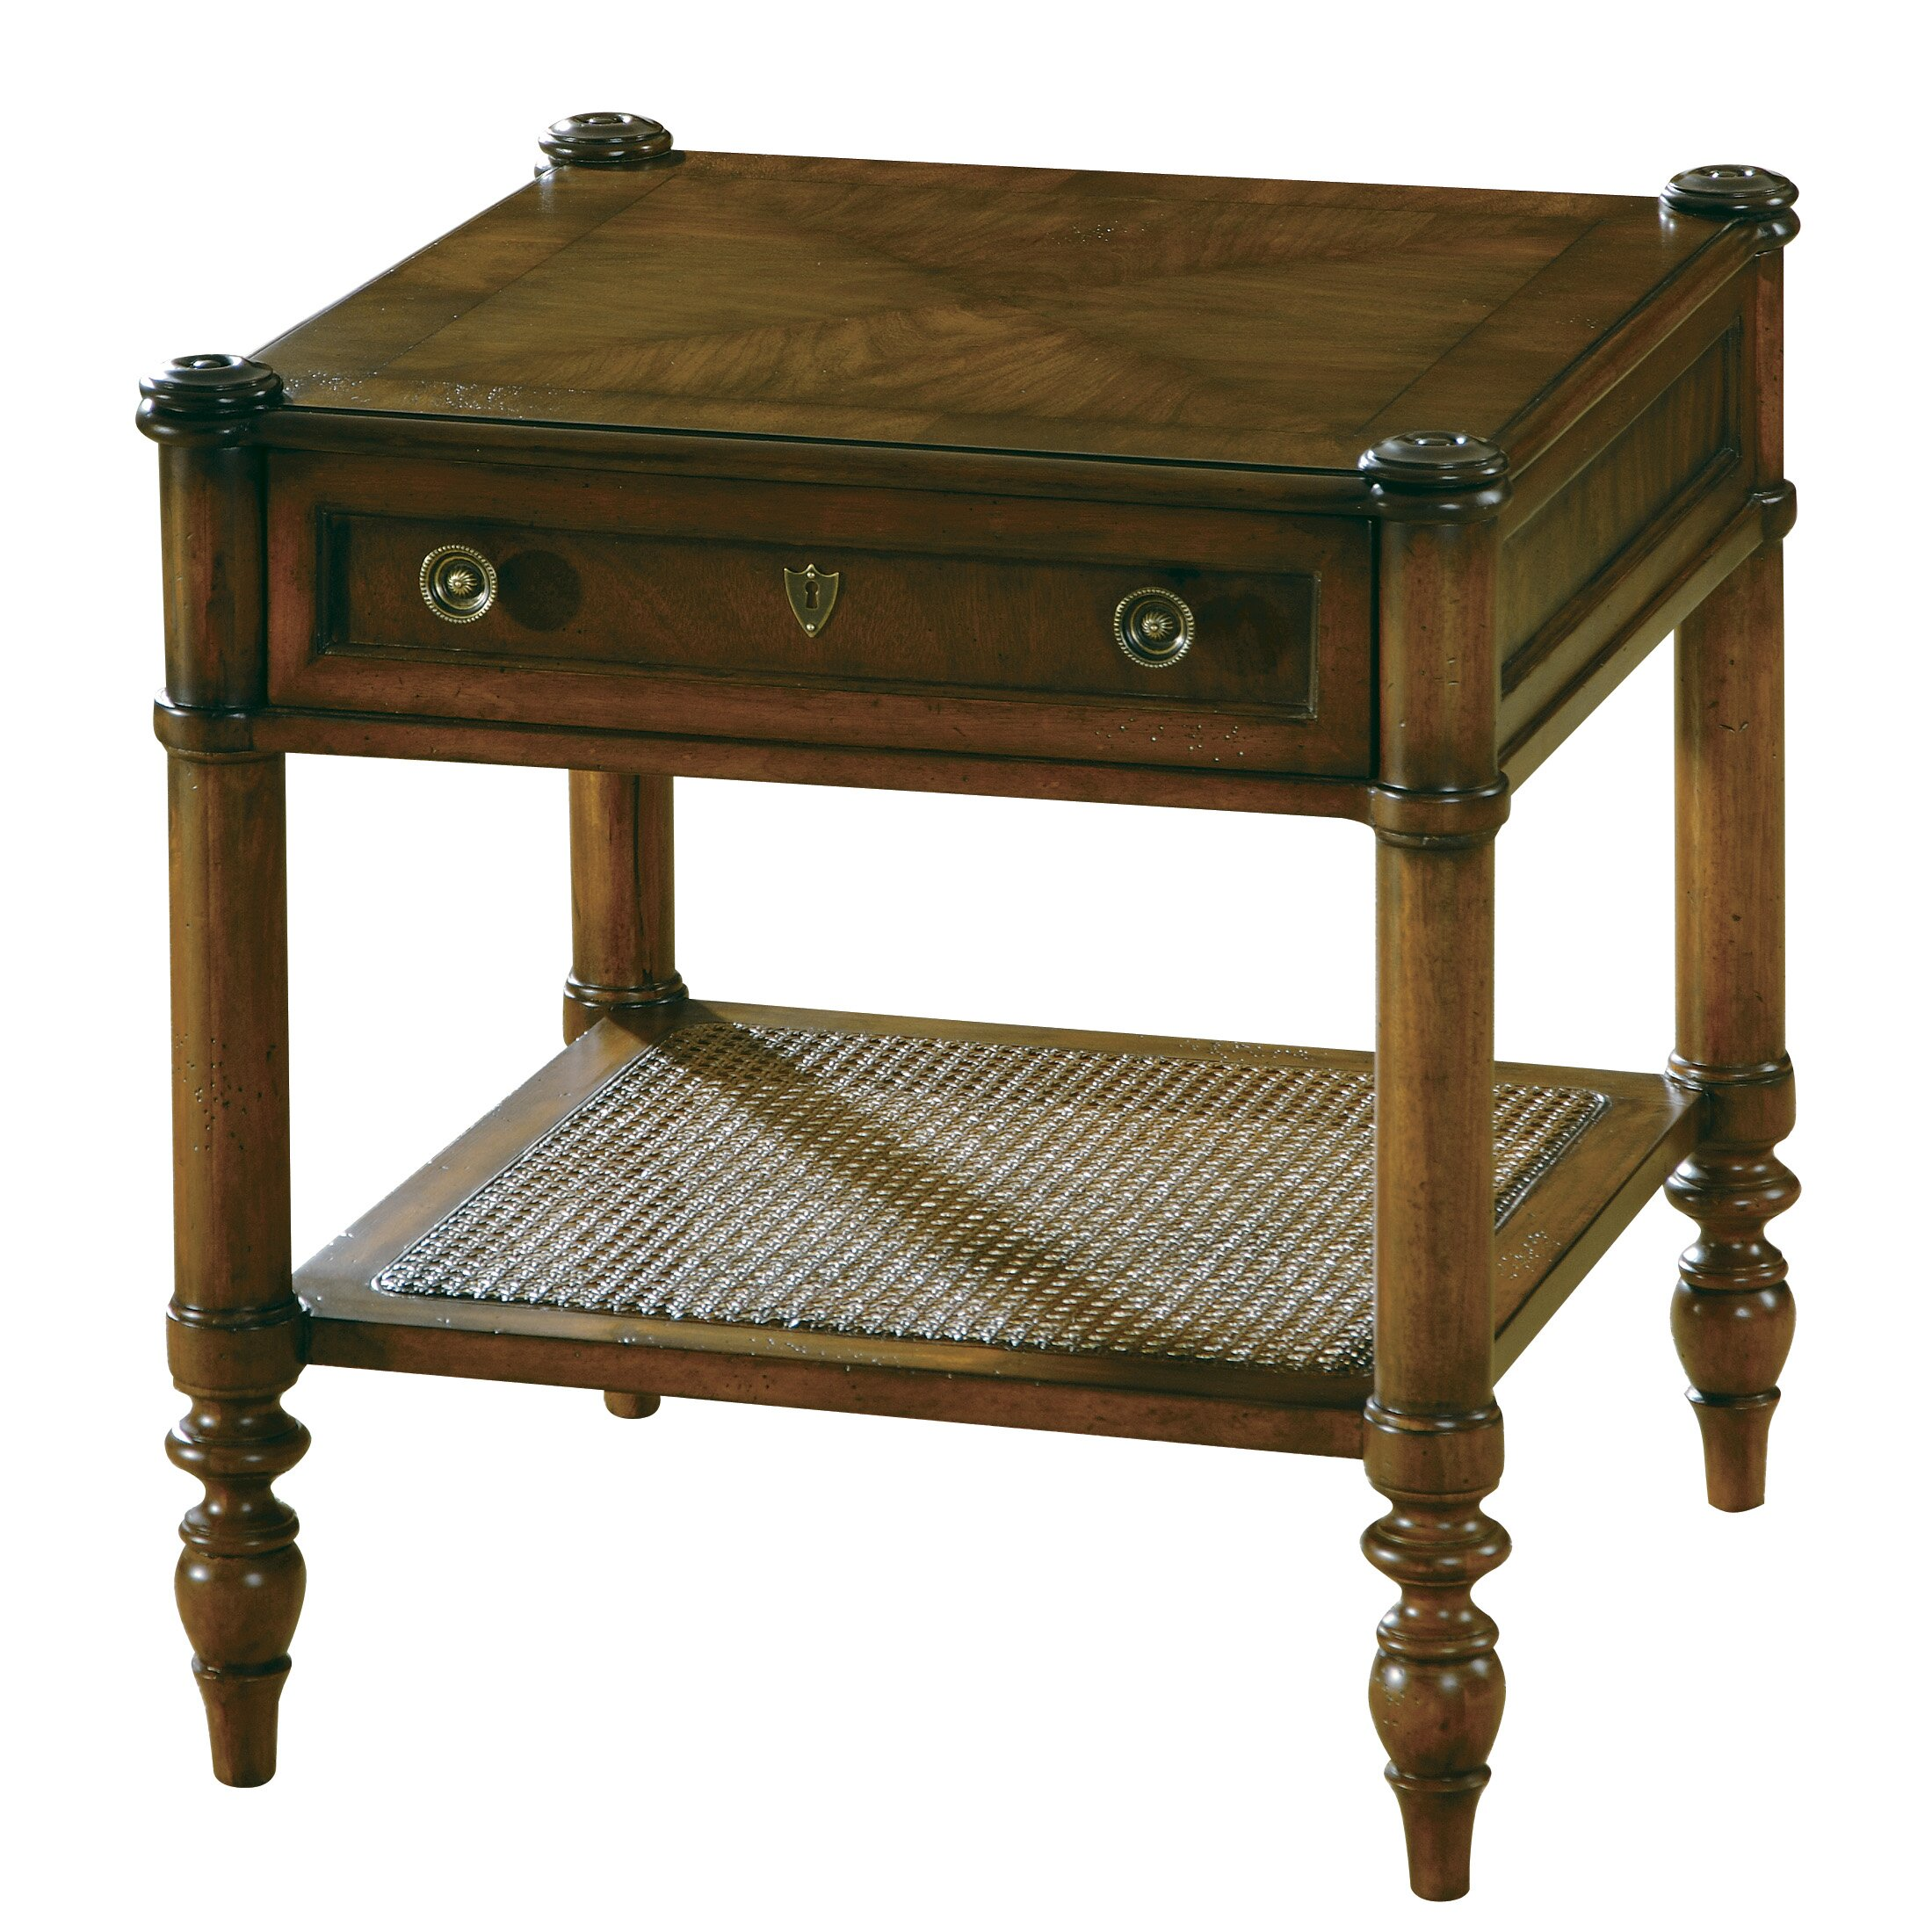 Hekman Accents End Table & Reviews  Wayfair. Teal Accent Table. Articulating Desk Lamp. Coffee Pod Drawer Holder. Corner Computer Desk Walmart. Lap Desk For Laptop. Computer Desk Storage Solutions. Vastu For Work Desk. Glass Dining Table And Chairs